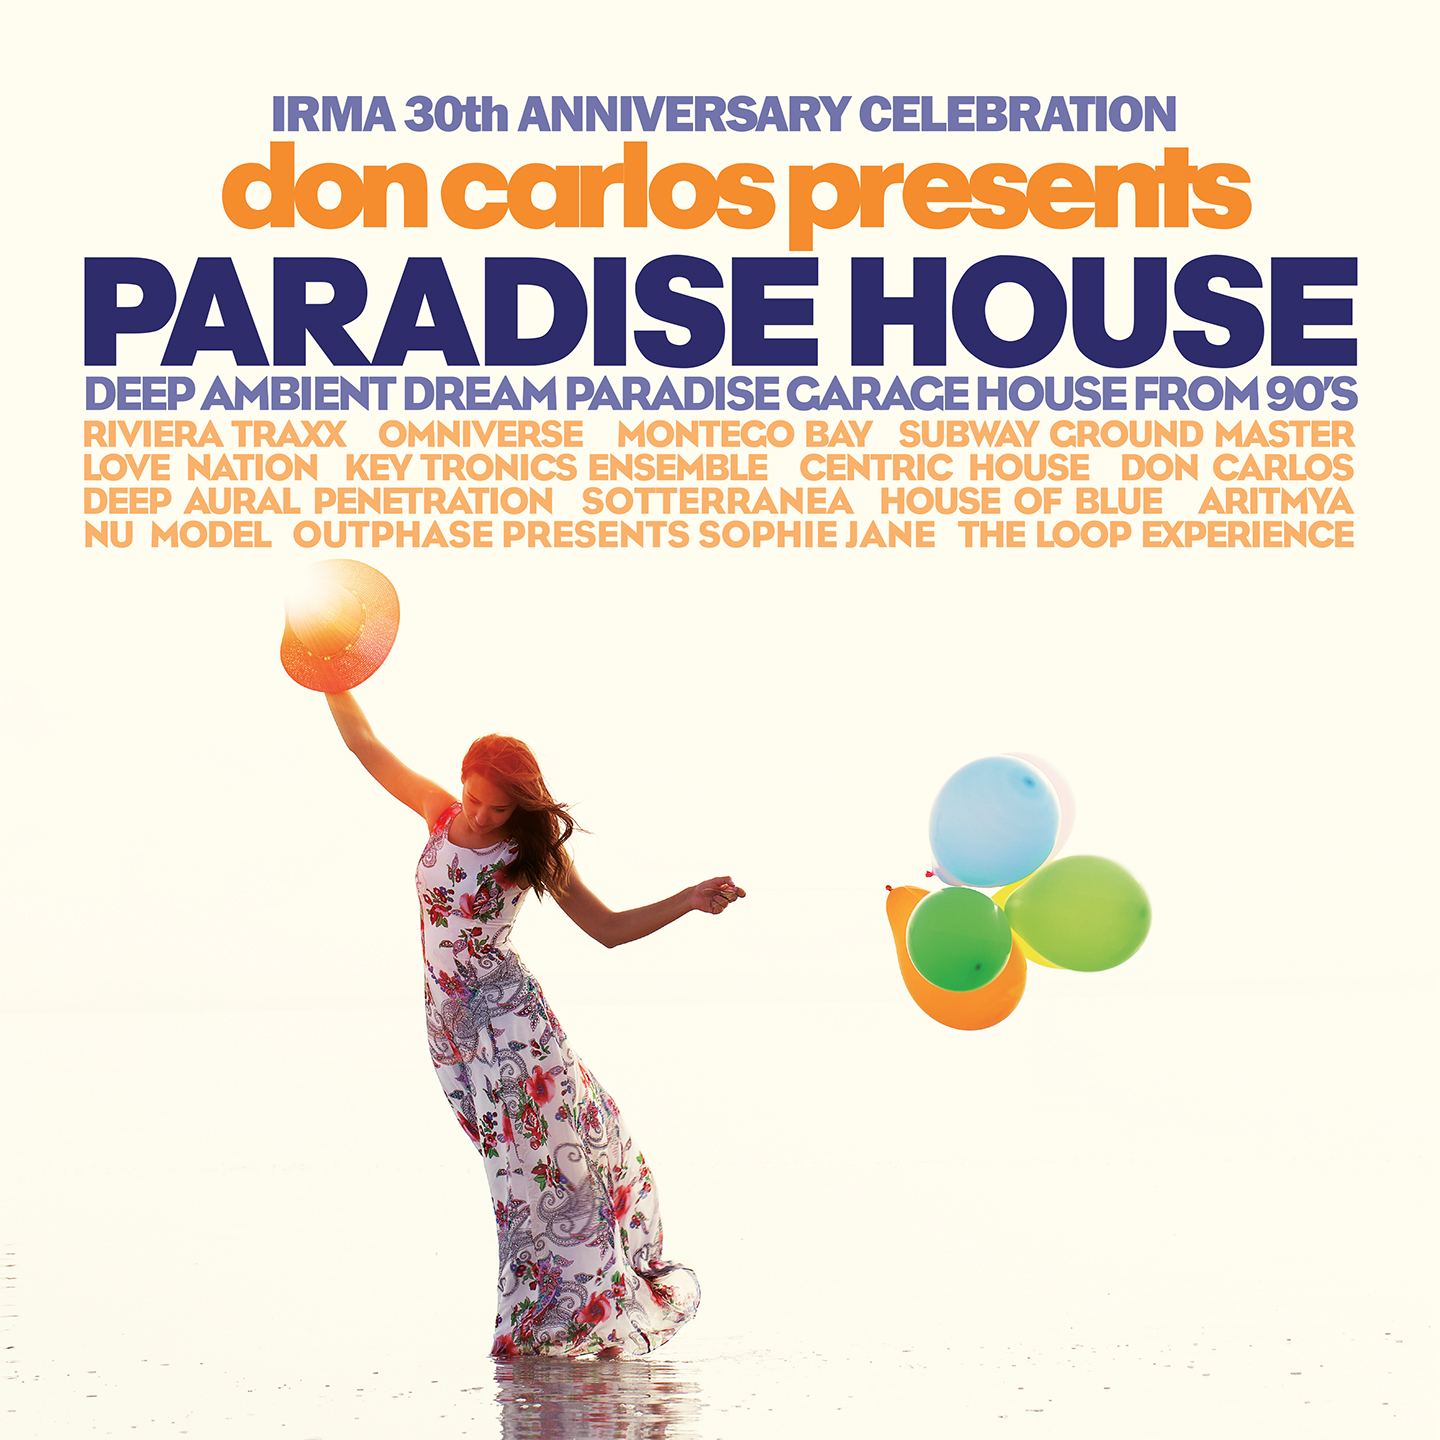 PARADISE HOUSE ( vinyl, lmt 500 copies )